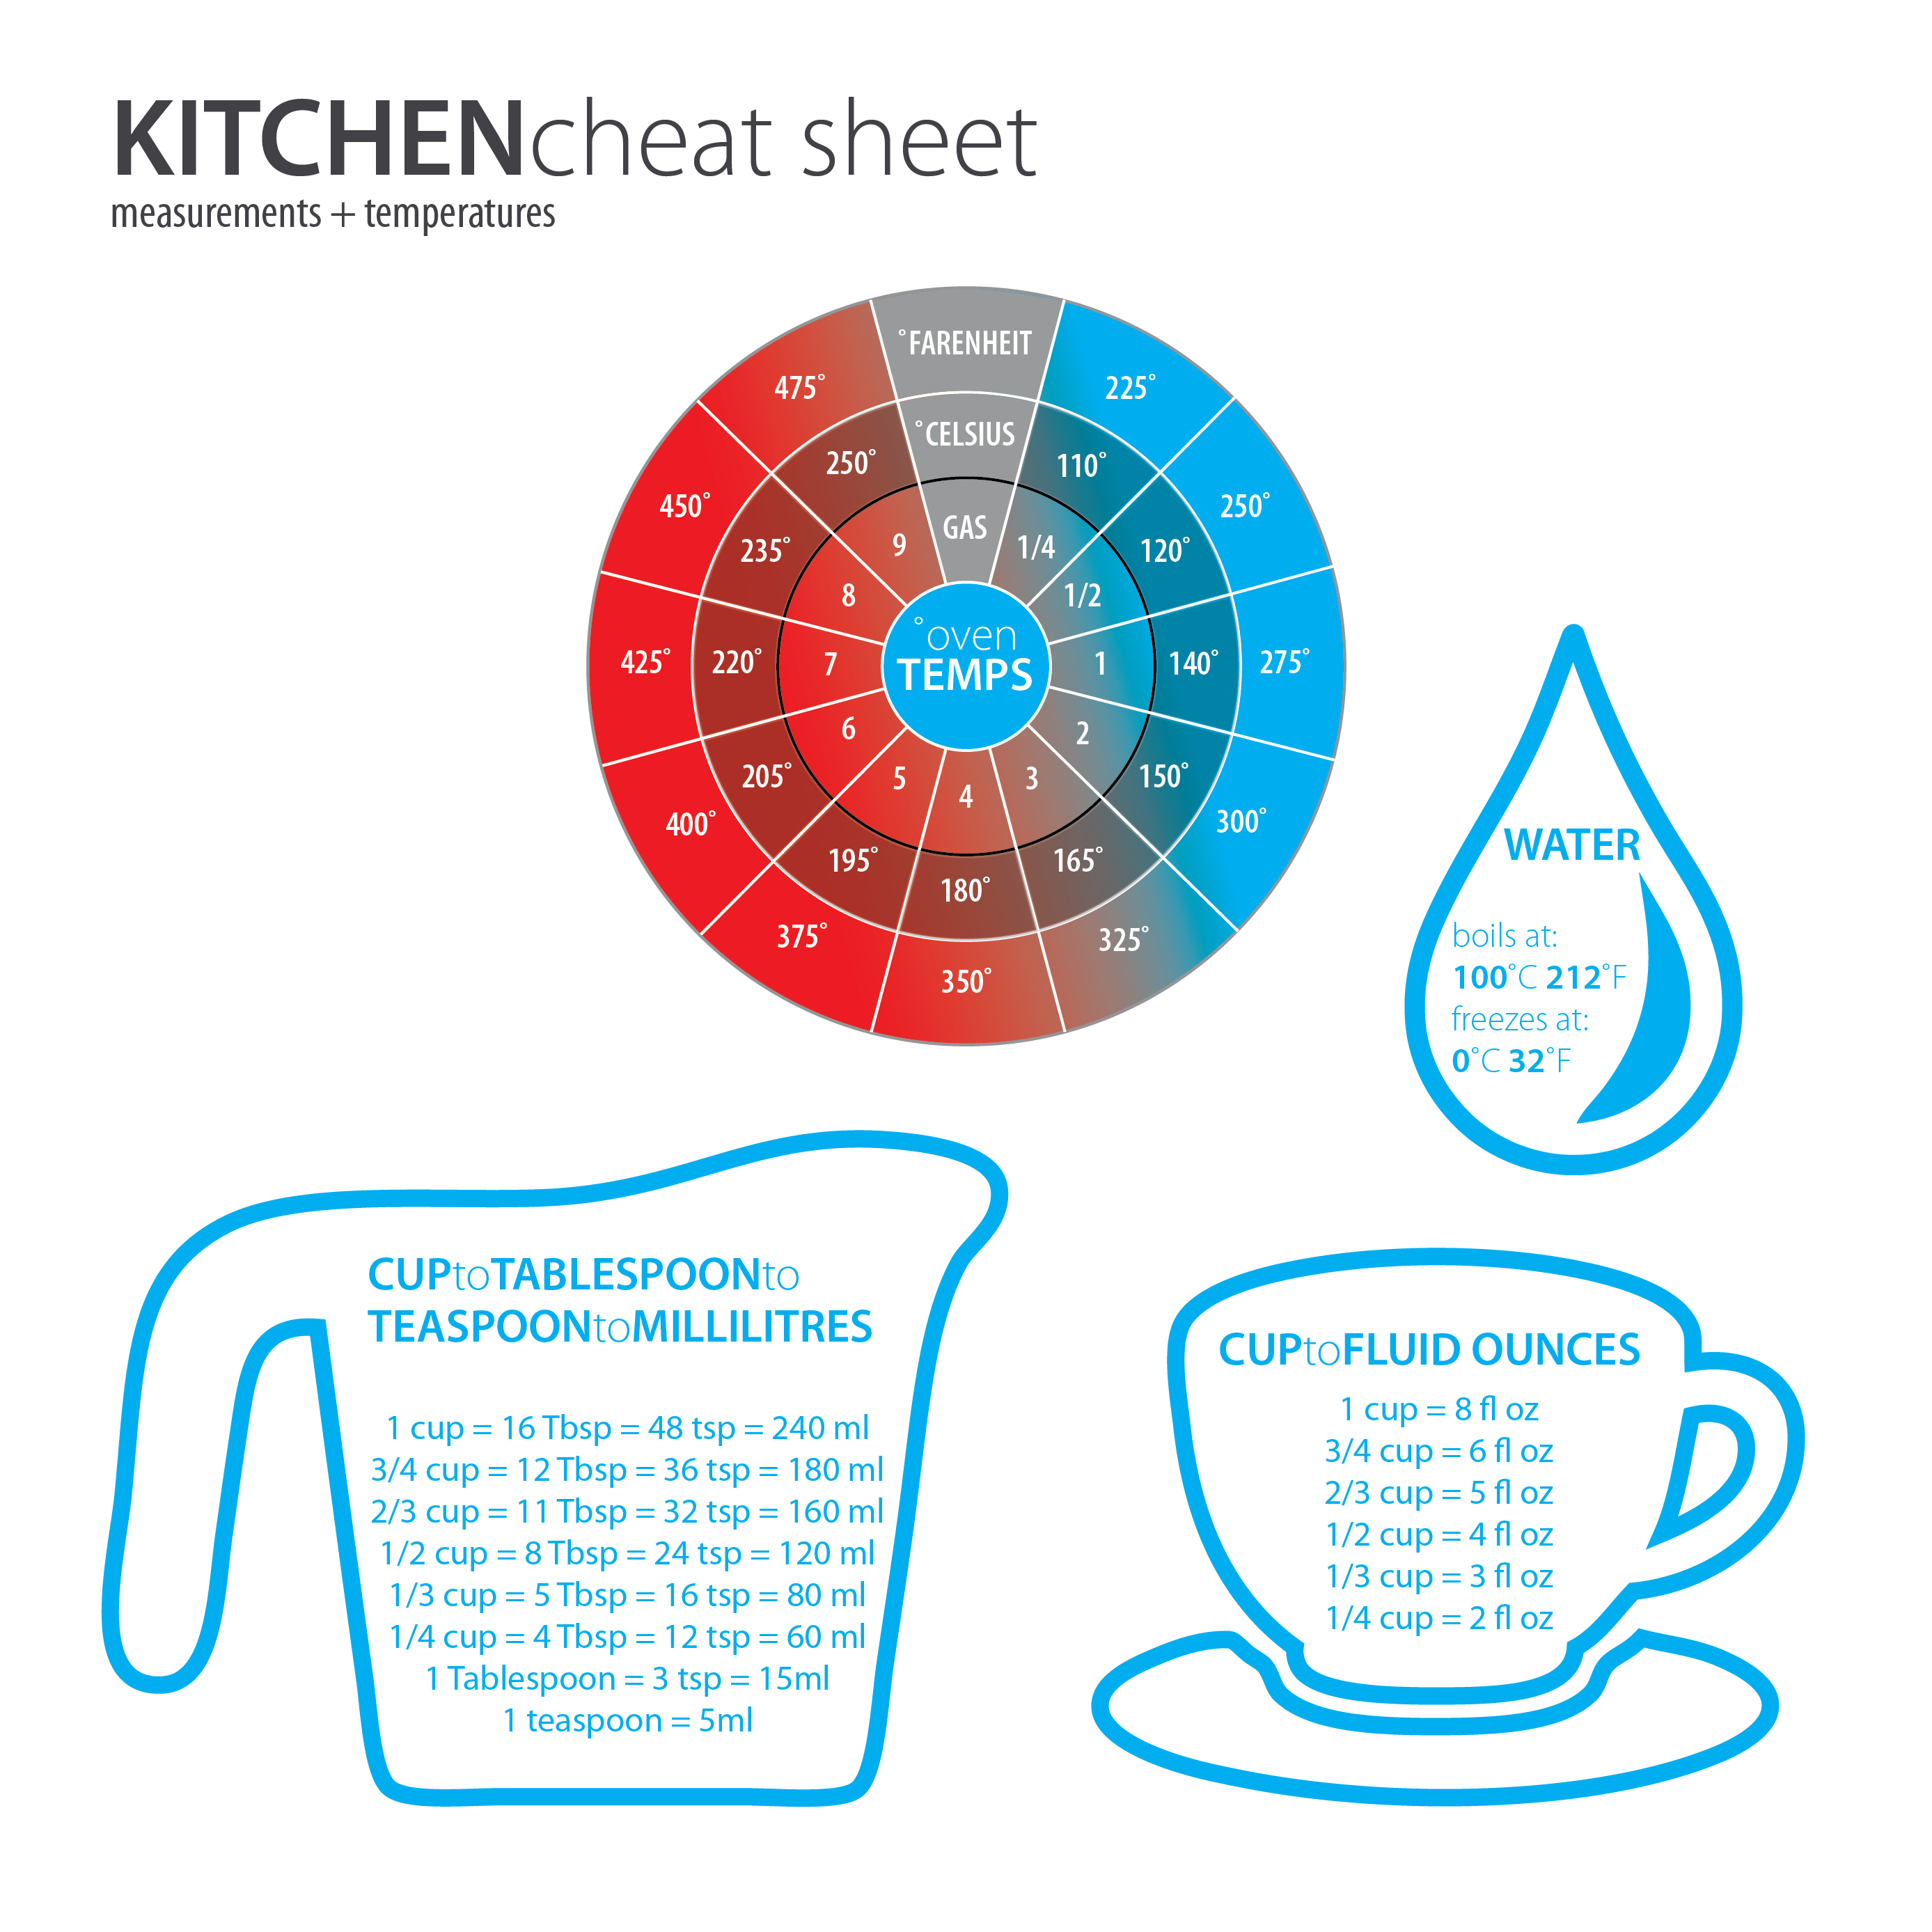 Kitchen Cheat Sheet-01